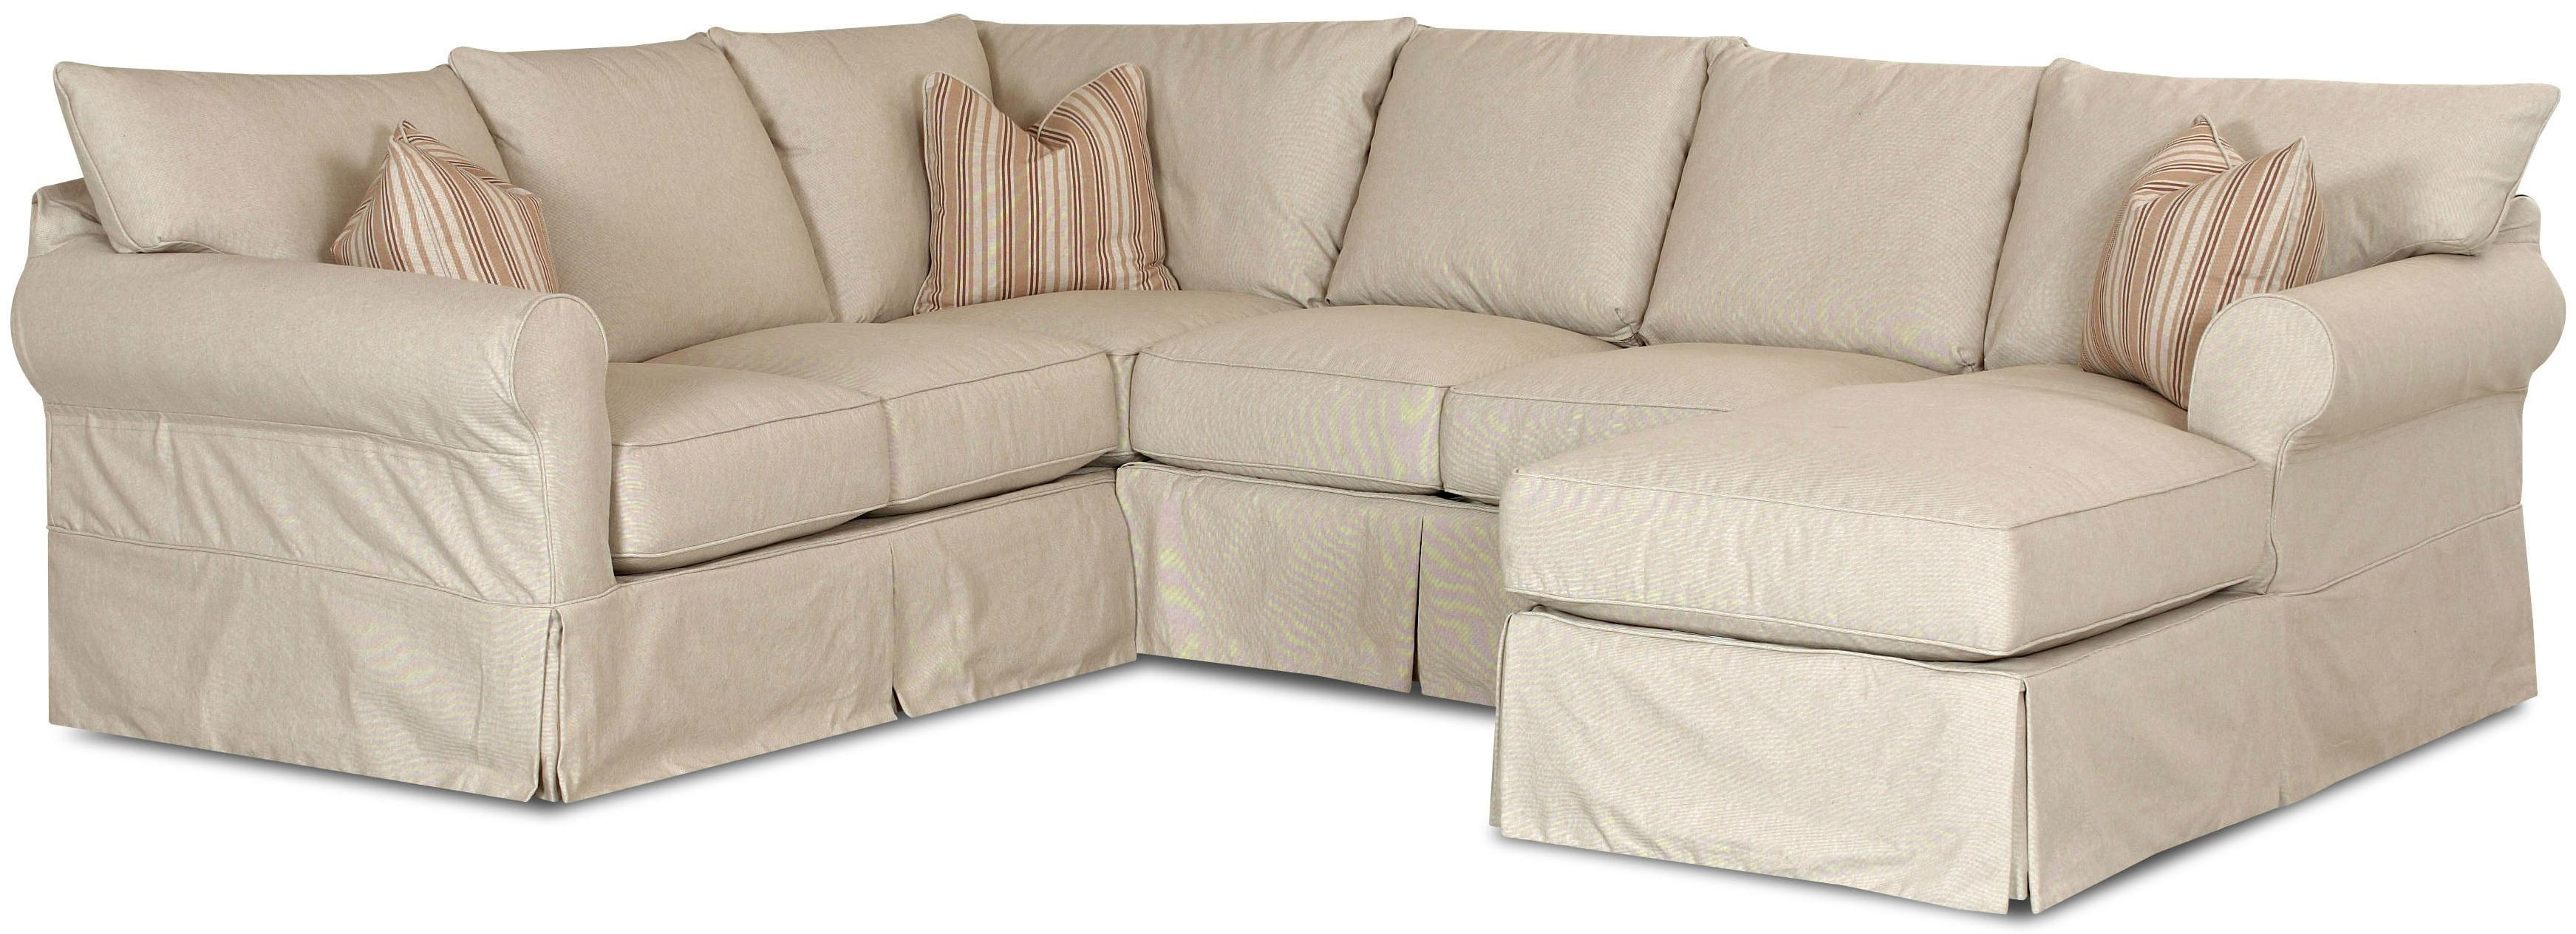 Sofas Center : Roll Arm Slipcovered Sofa With Within Slipcovered Chaises (Image 19 of 20)